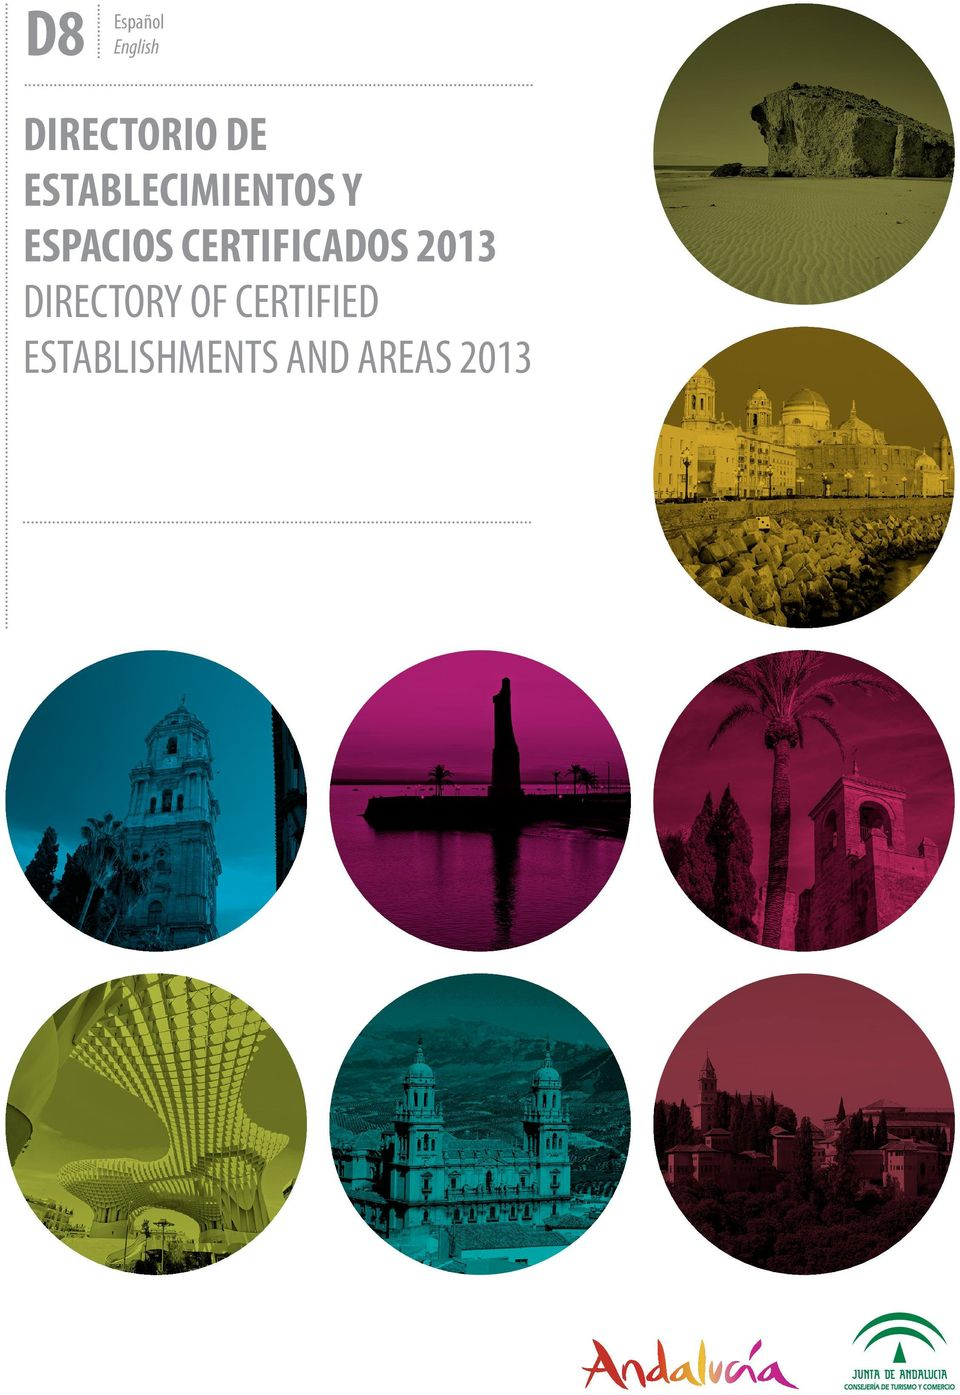 DIRECTORY OF CERTIFIED ESTABLISHMENTS AND